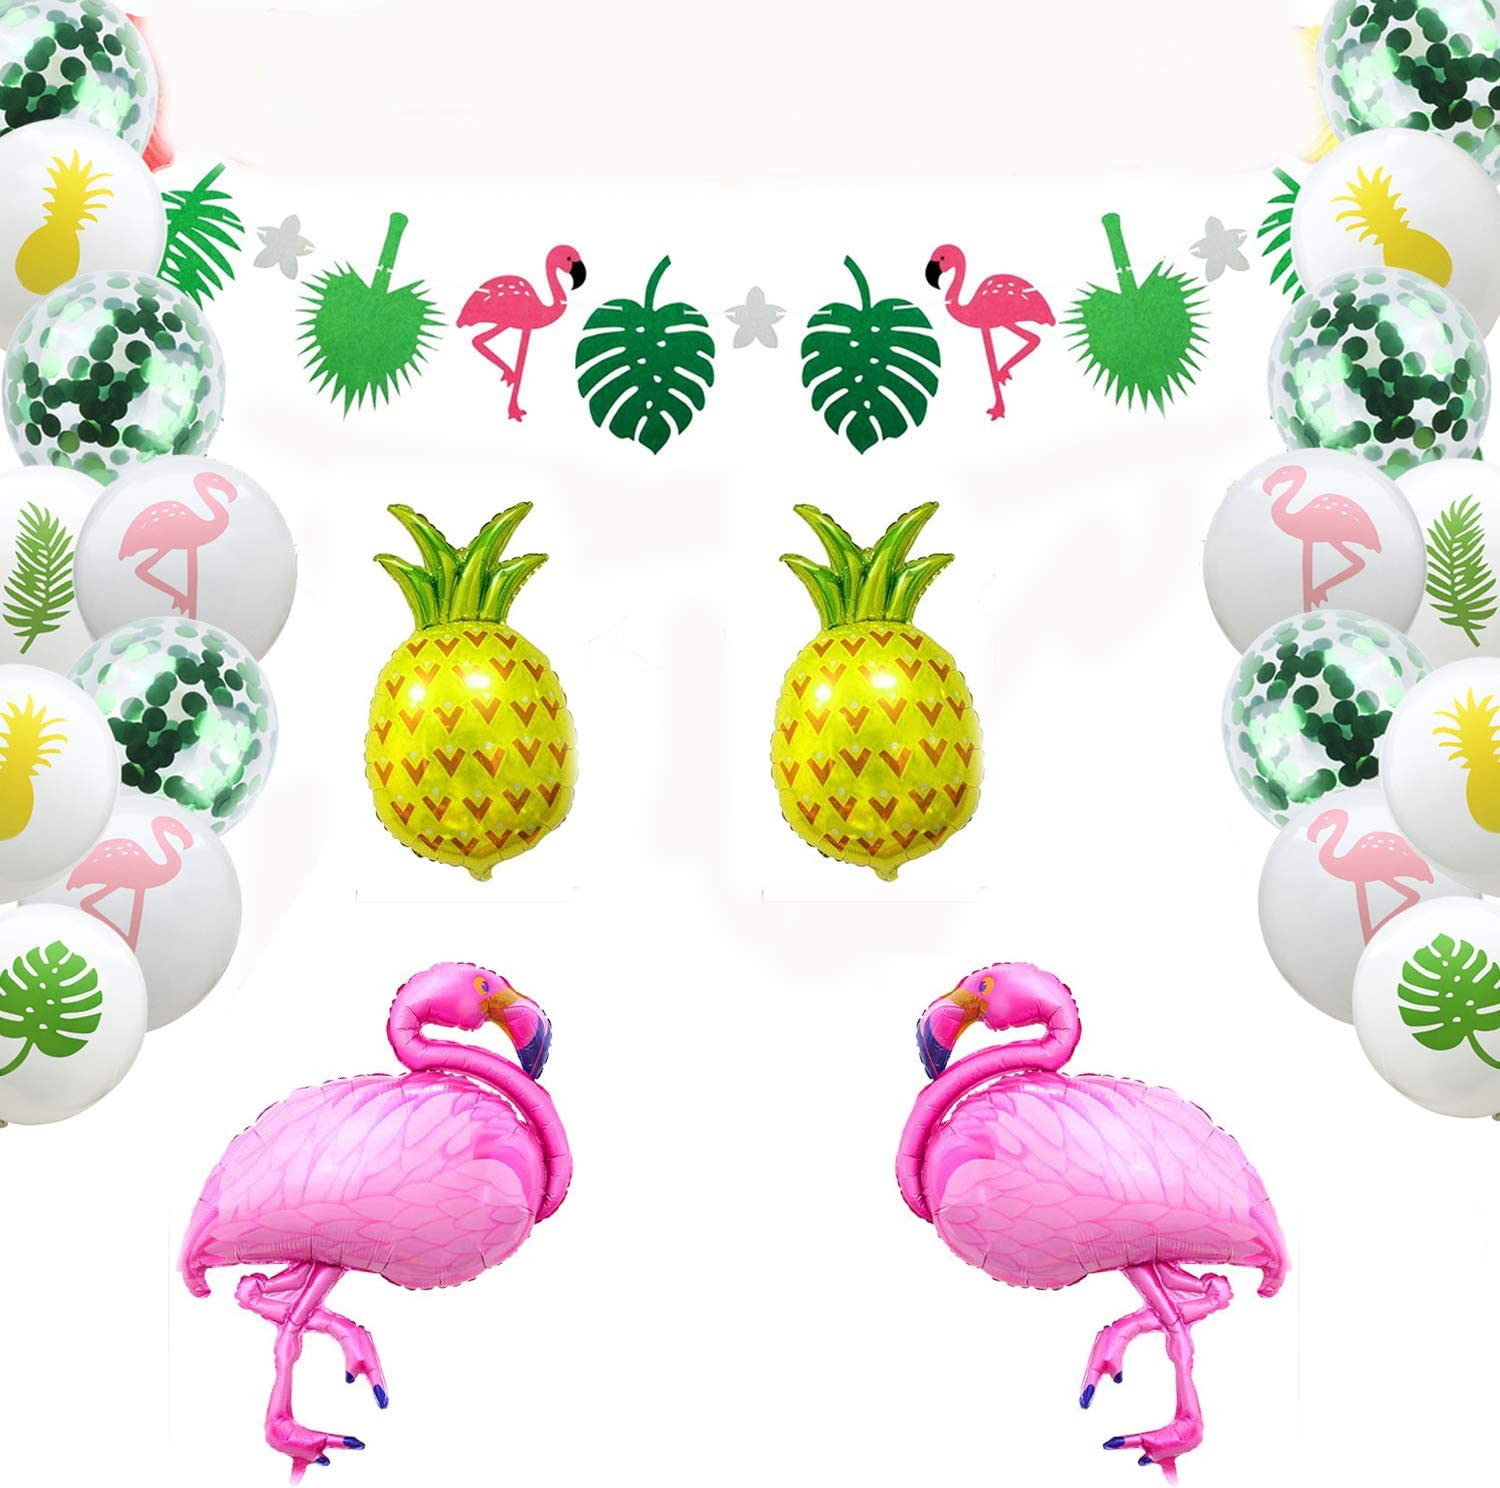 Hawaiian Tropical Decoration, 45PC Beach Party Supplies with Colourful Pineapple Flamingo Balloons Palm Simulation Leaves Banner for Luau Party Jungle Summer Table Decorations